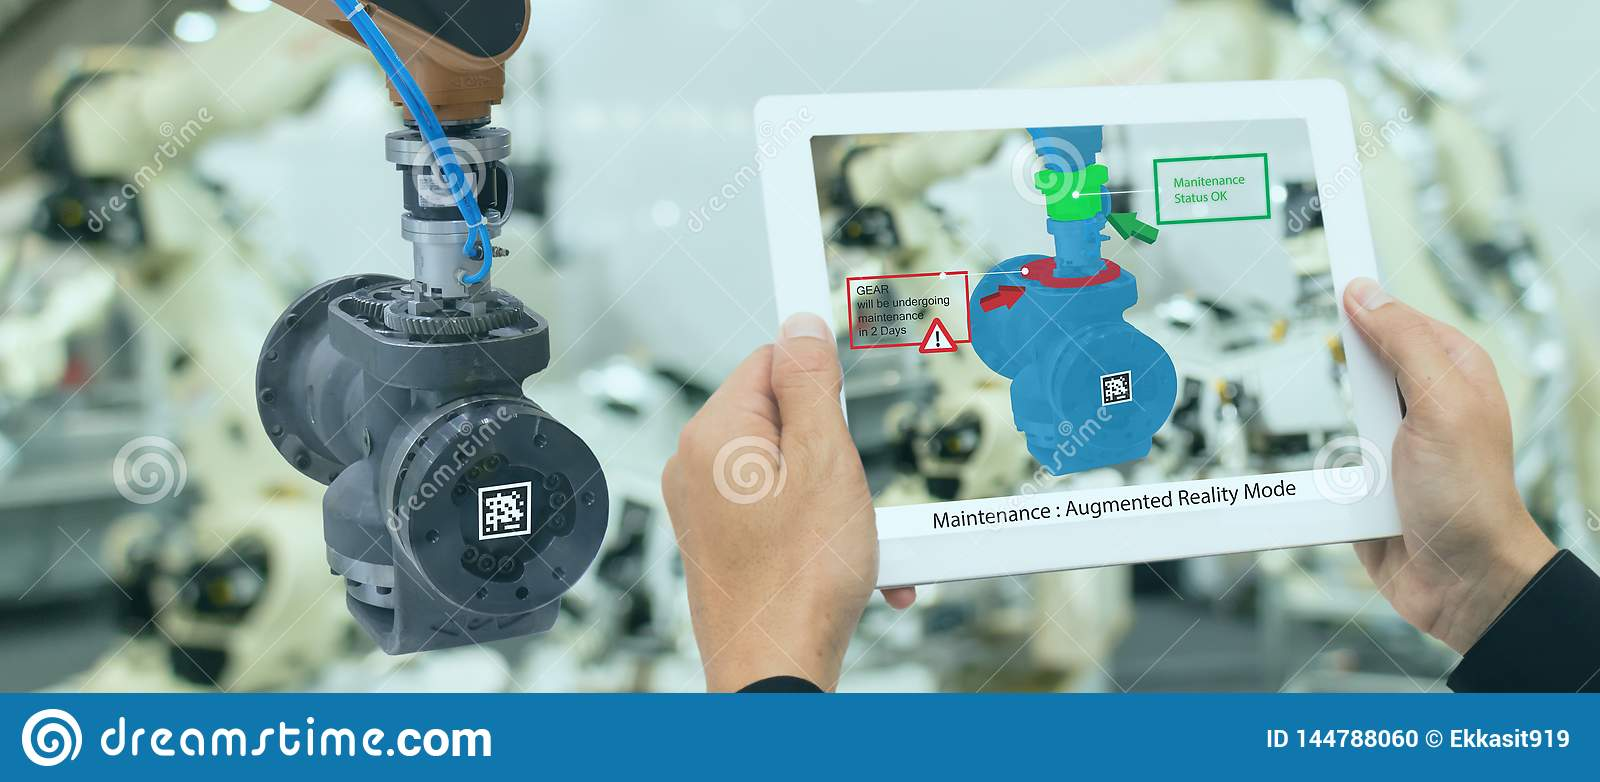 Iot industry 4.0 concept,industrial engineer using smart tablet with augmented mixed with virtual reality technology to monitoring